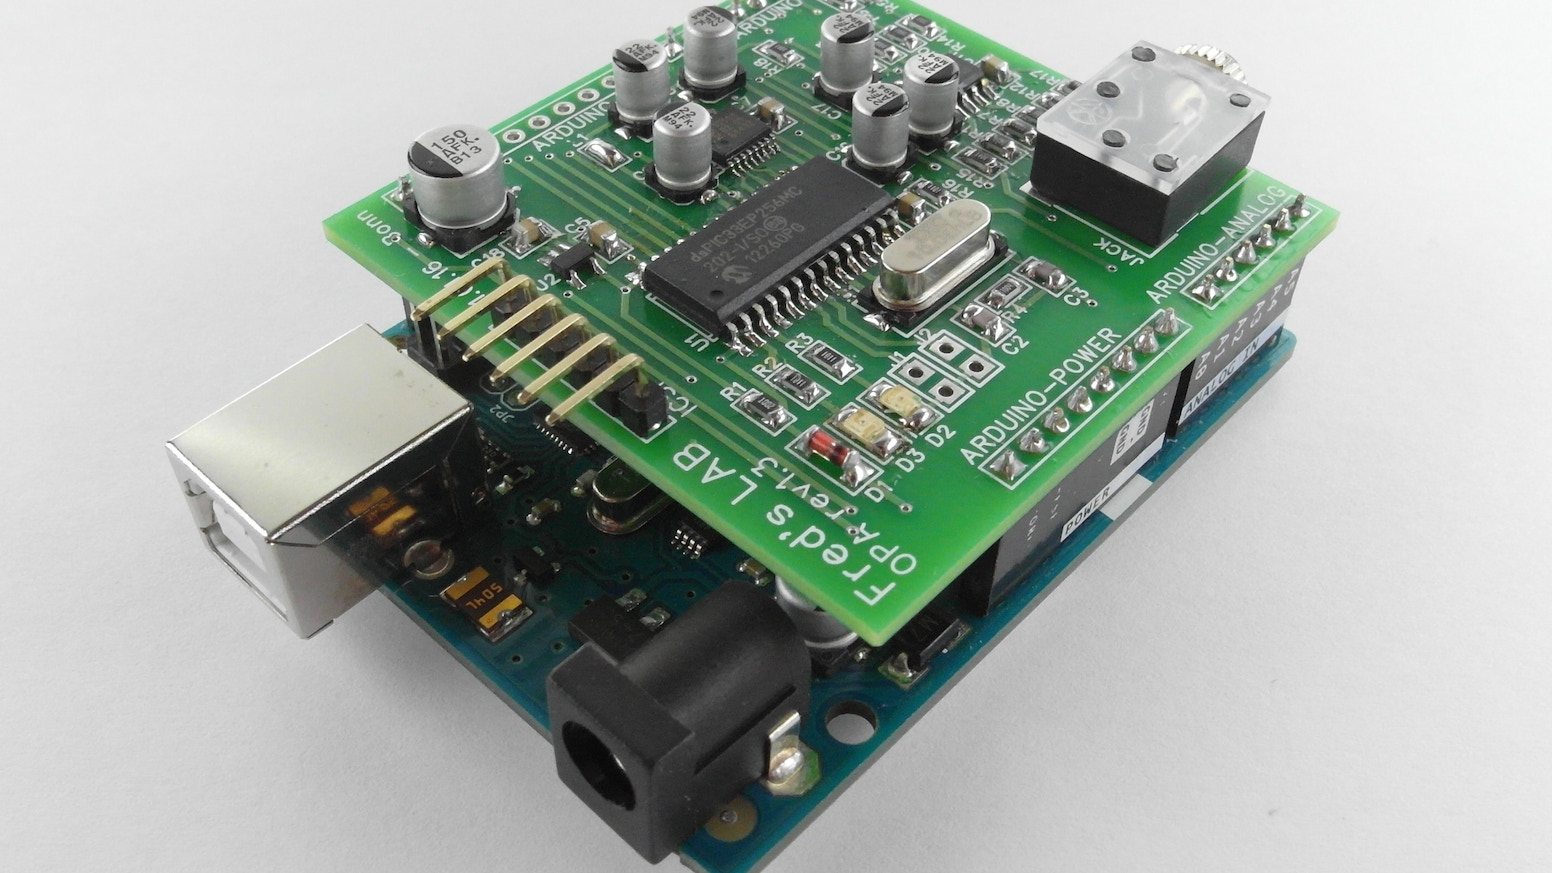 Opa Multitimbral Fm Synthesizer Shield For Arduino By Frdric N5ese Teensey Noise Generator Schematic Meslin Kickstarter